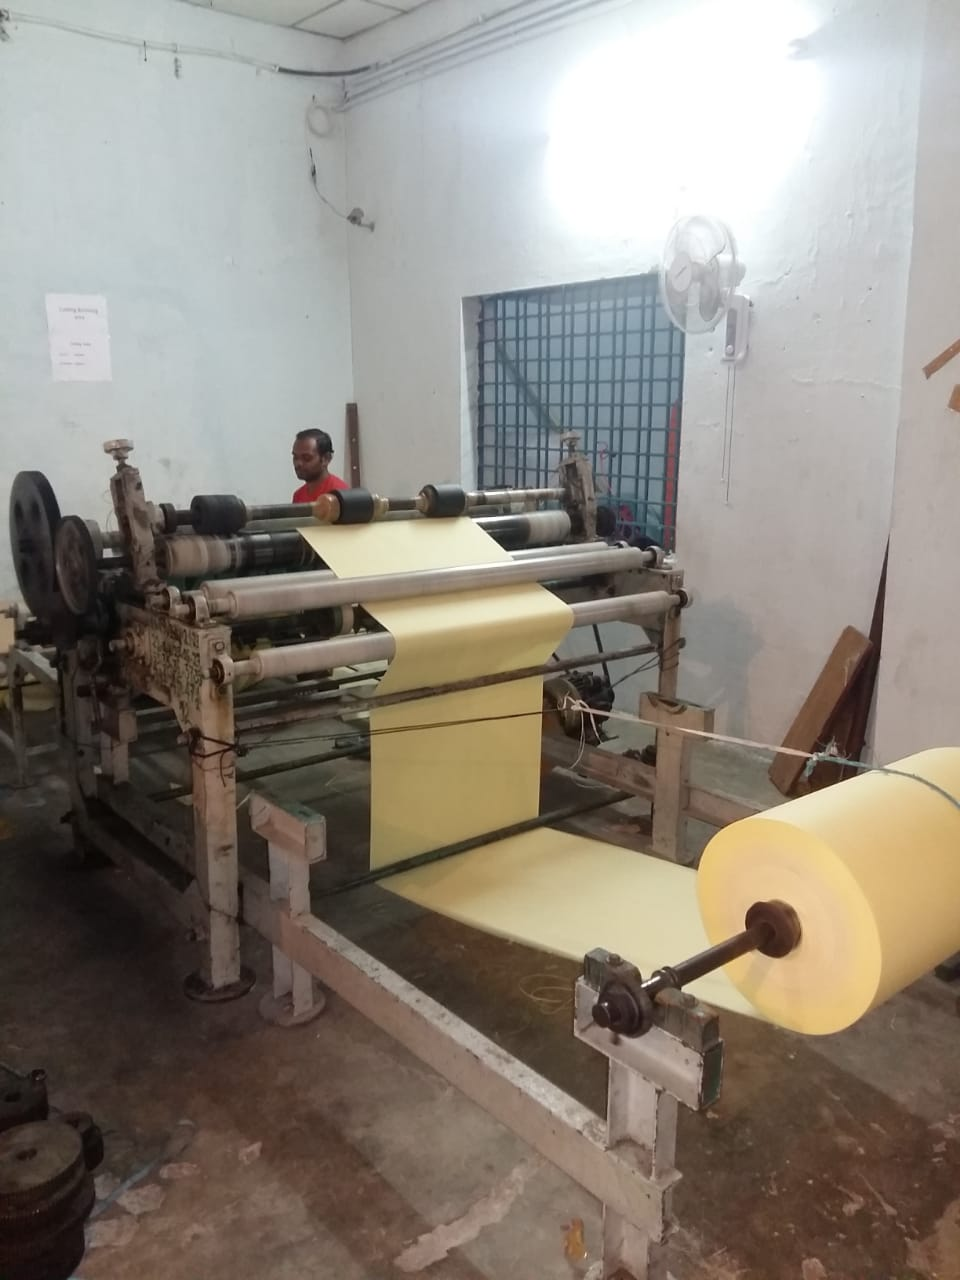 Profitable Non-Woven Bag Manufacturing Business for Sale in Hyderabad